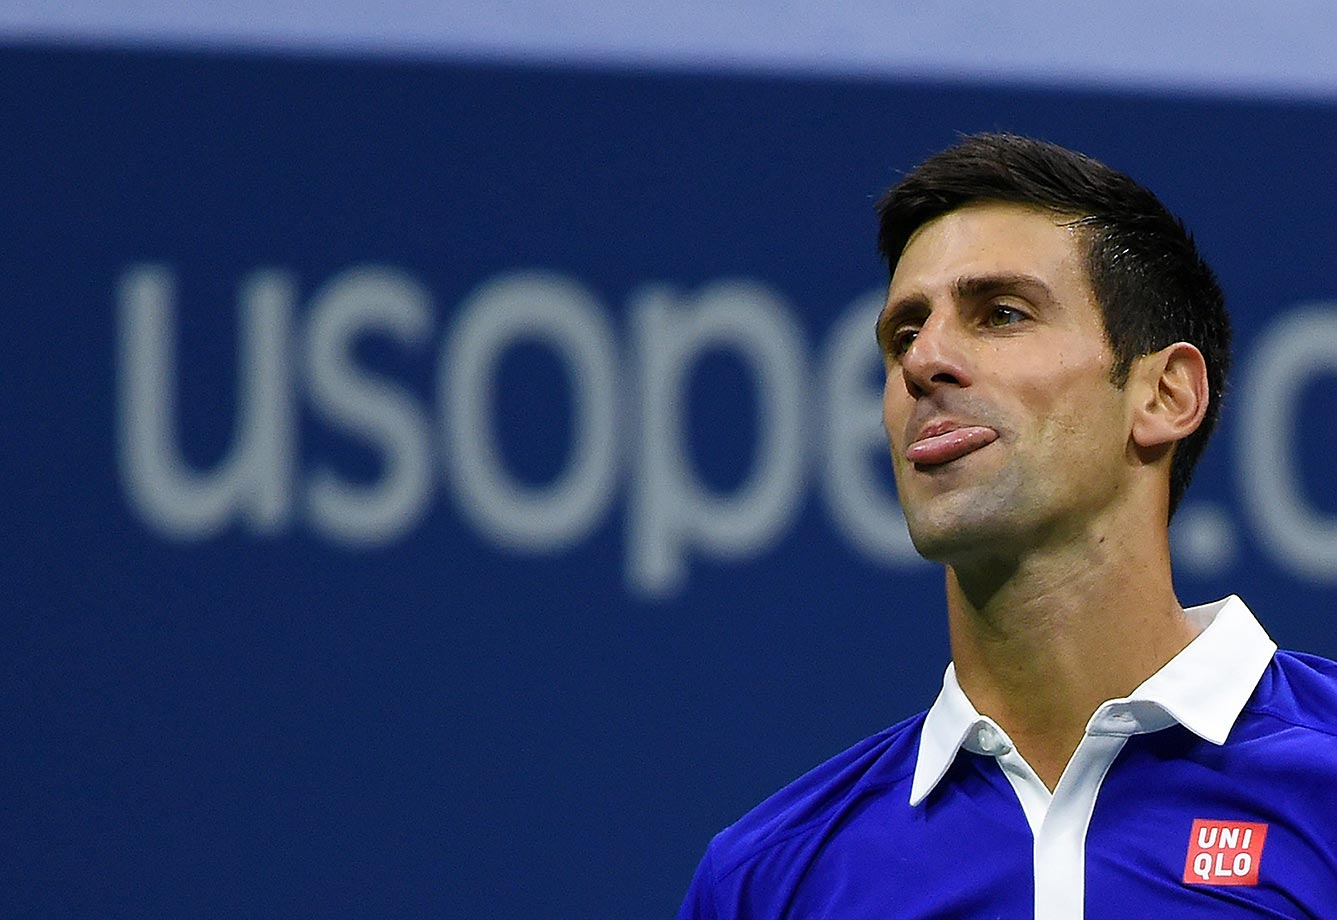 Novak Djokovic puts on a face after losing a point to Roger Federer in the Finals of the U.S. Open.